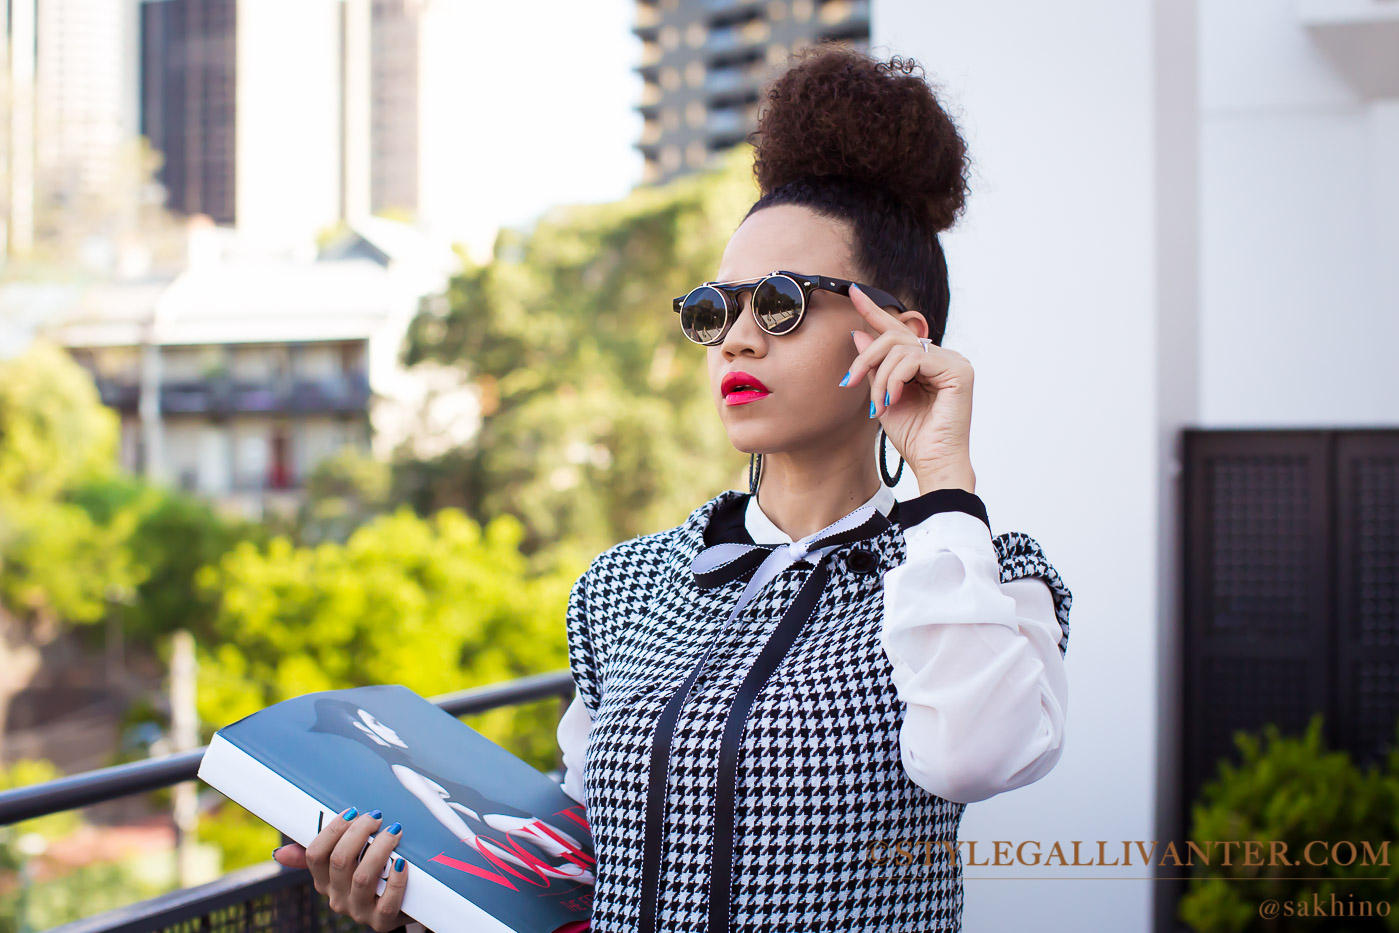 houndstooth-trends-2016_style-gallivanter-2016_top-bloggers-london-2016_liverpool-top-best-fashion-bloggers-2016_top-natural-hair-bloggers-uk-2016_Australian-top-style-bloggers-2016-20